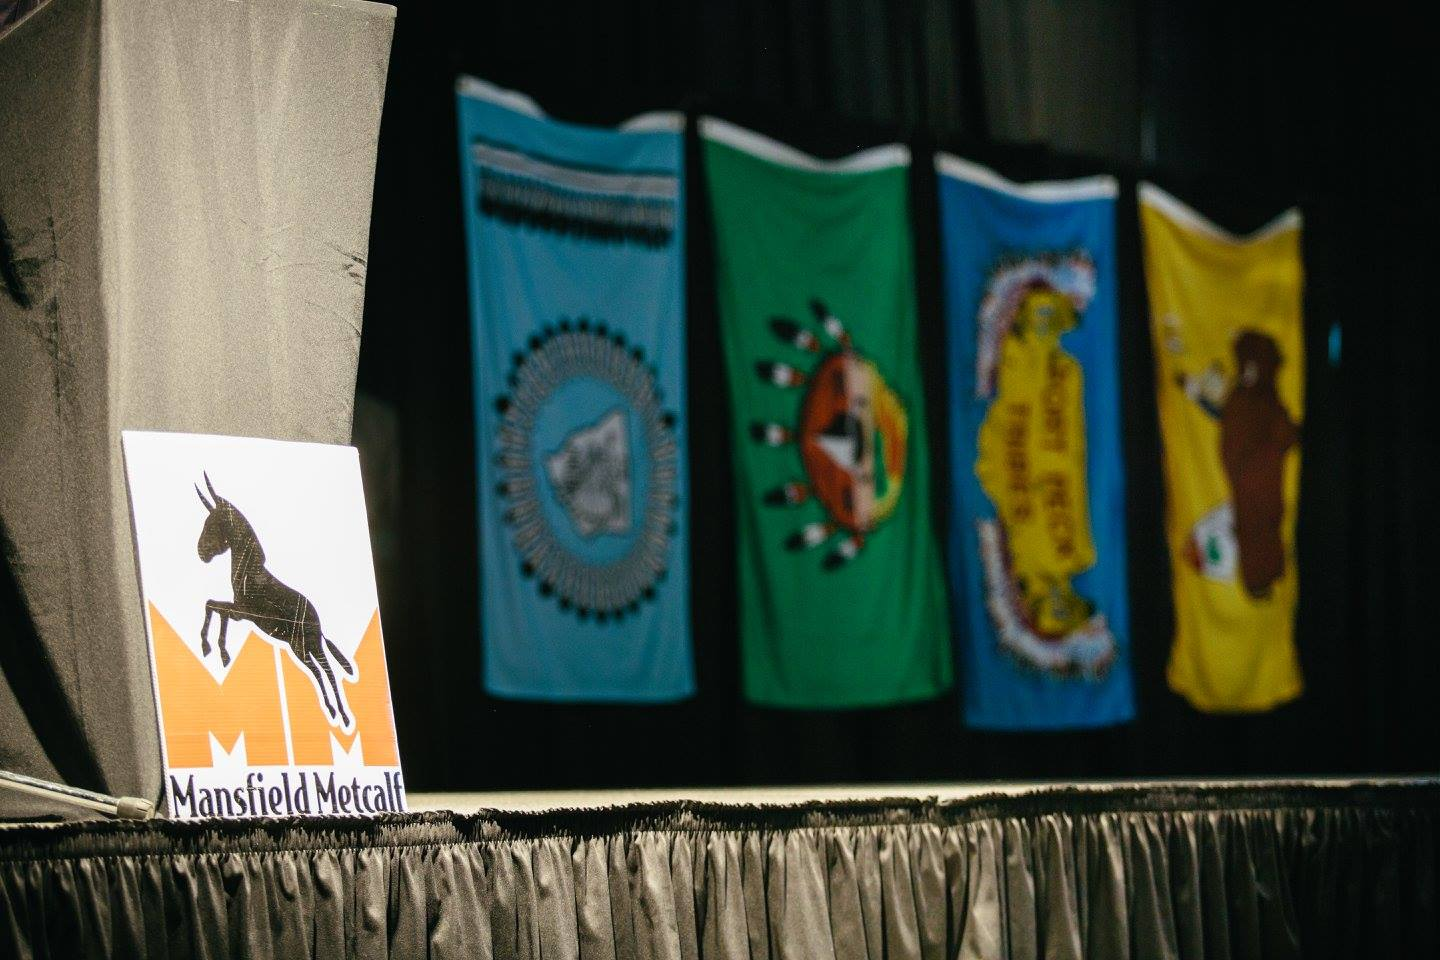 Mark Trahant: The mechanics of reaching voters in Indian Country